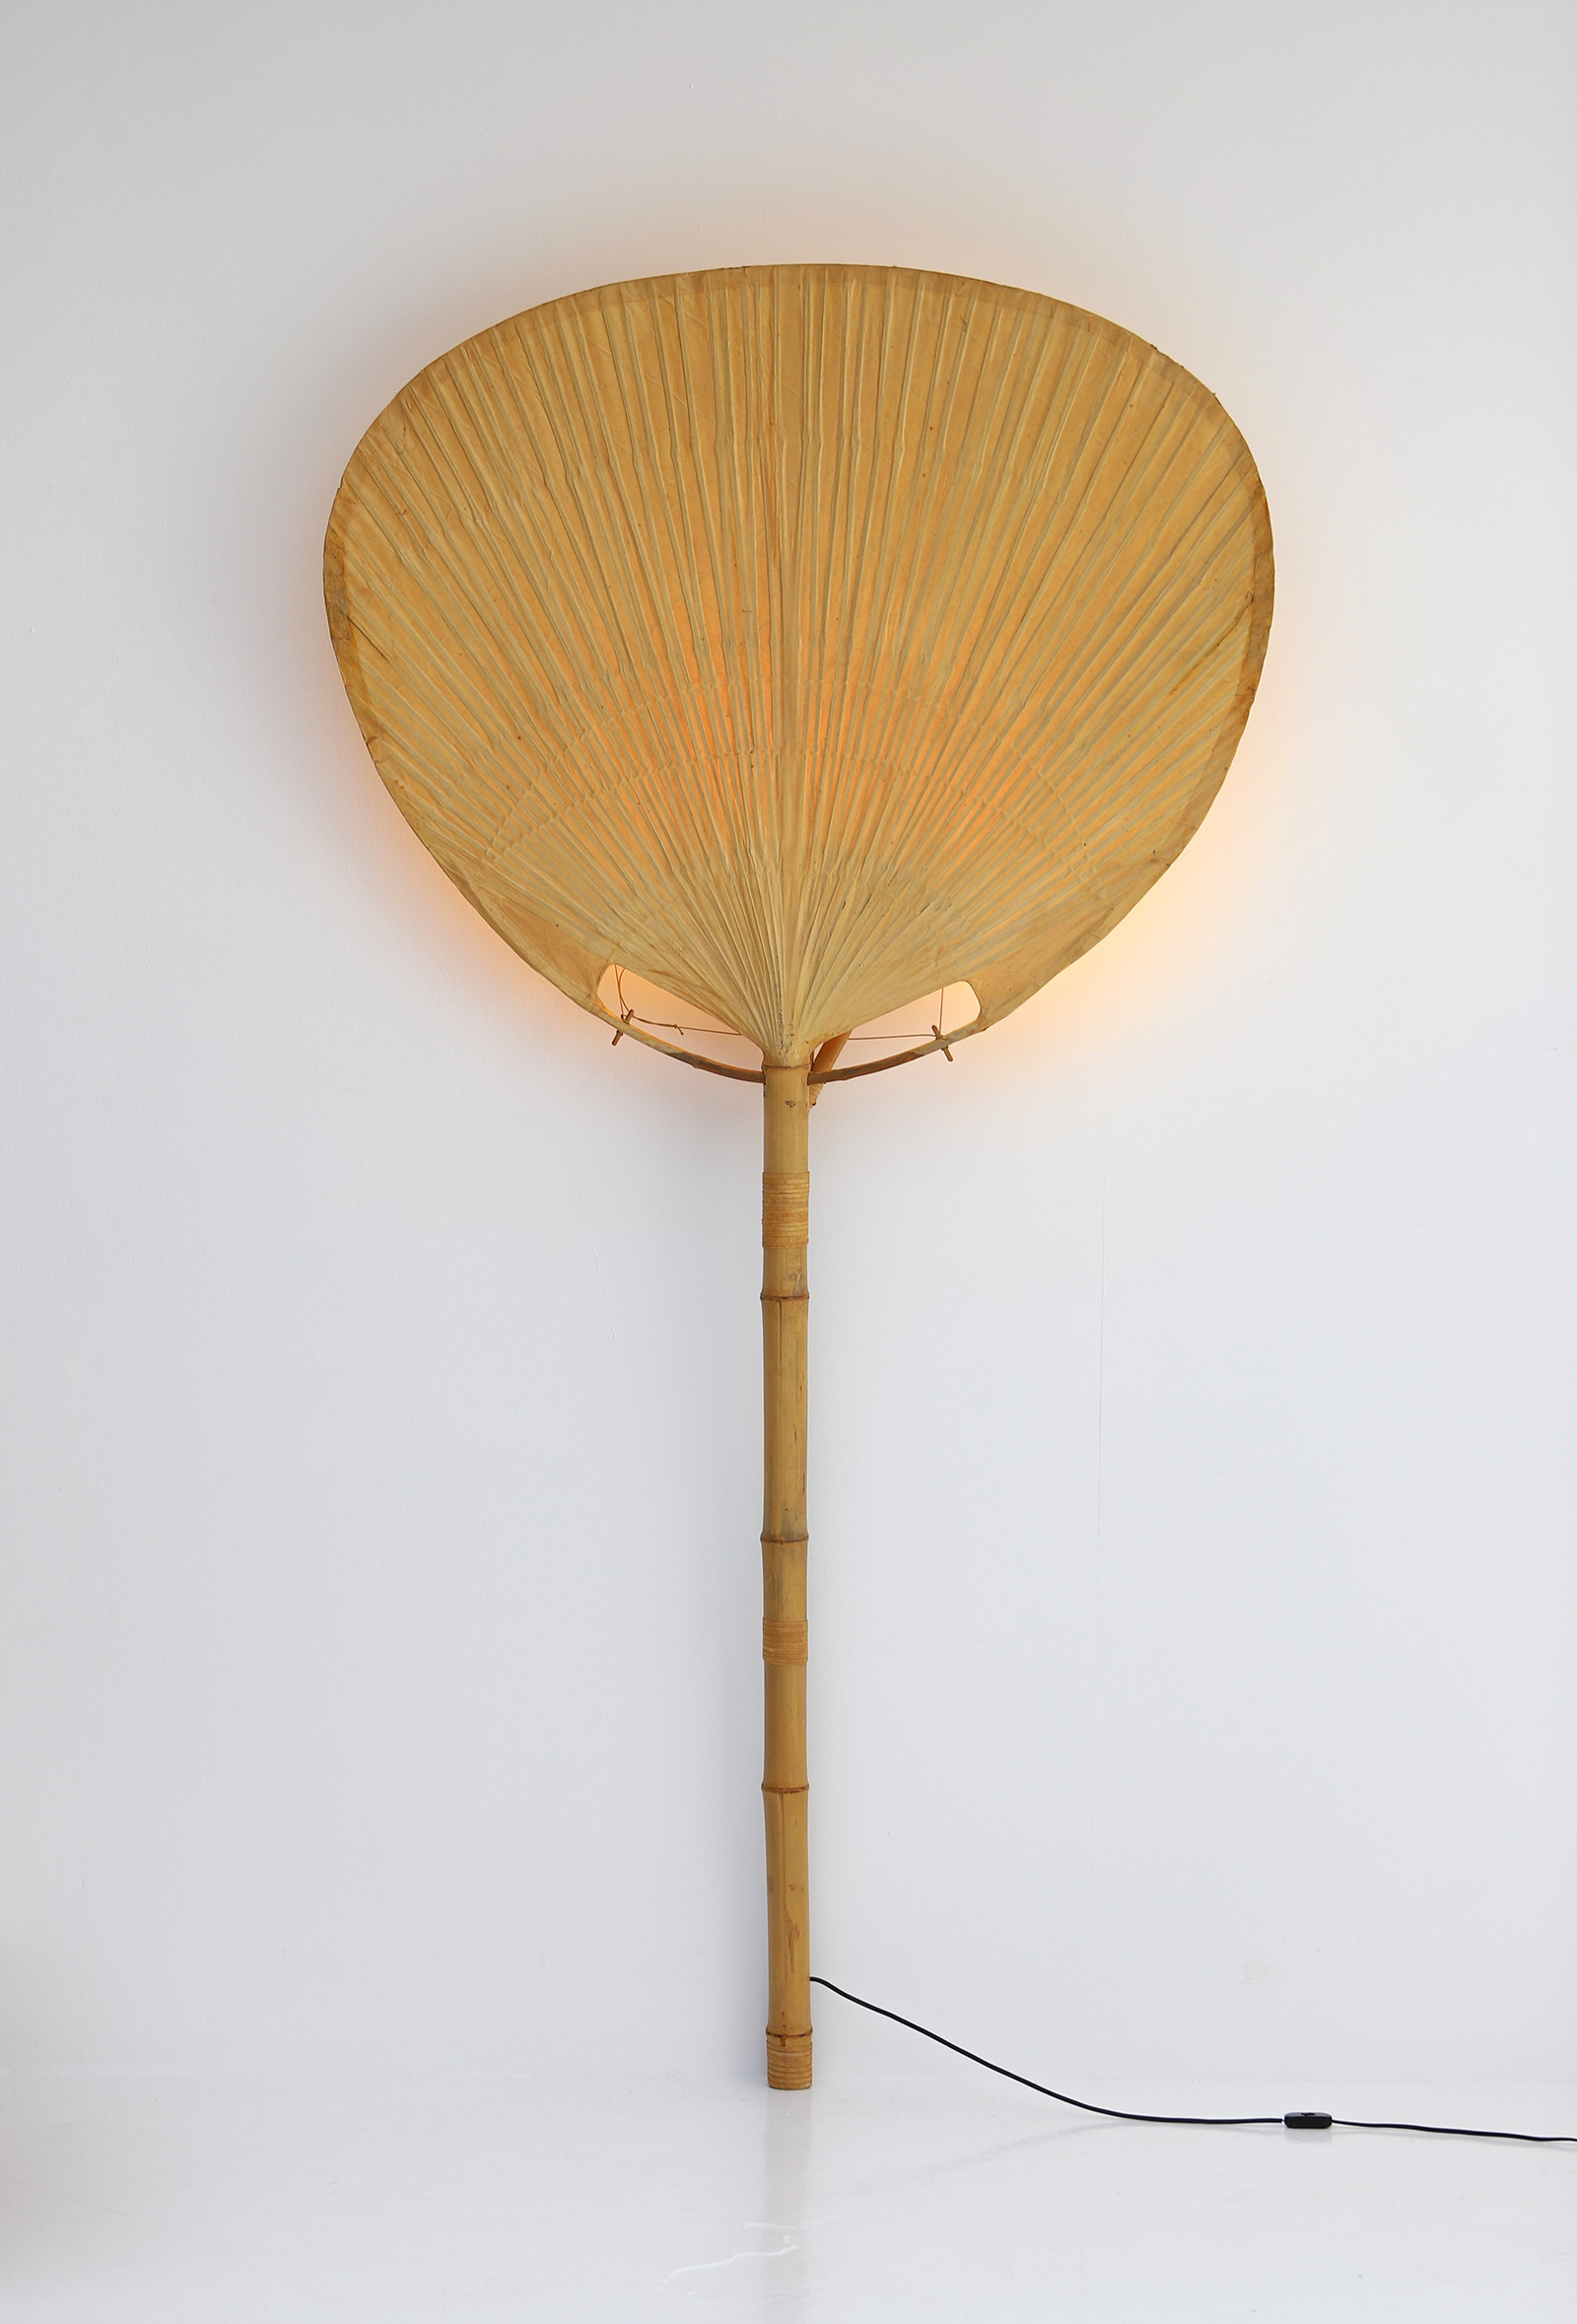 Large Uchiwa Floor Lamp by Ingo Maurer, 1977image 2